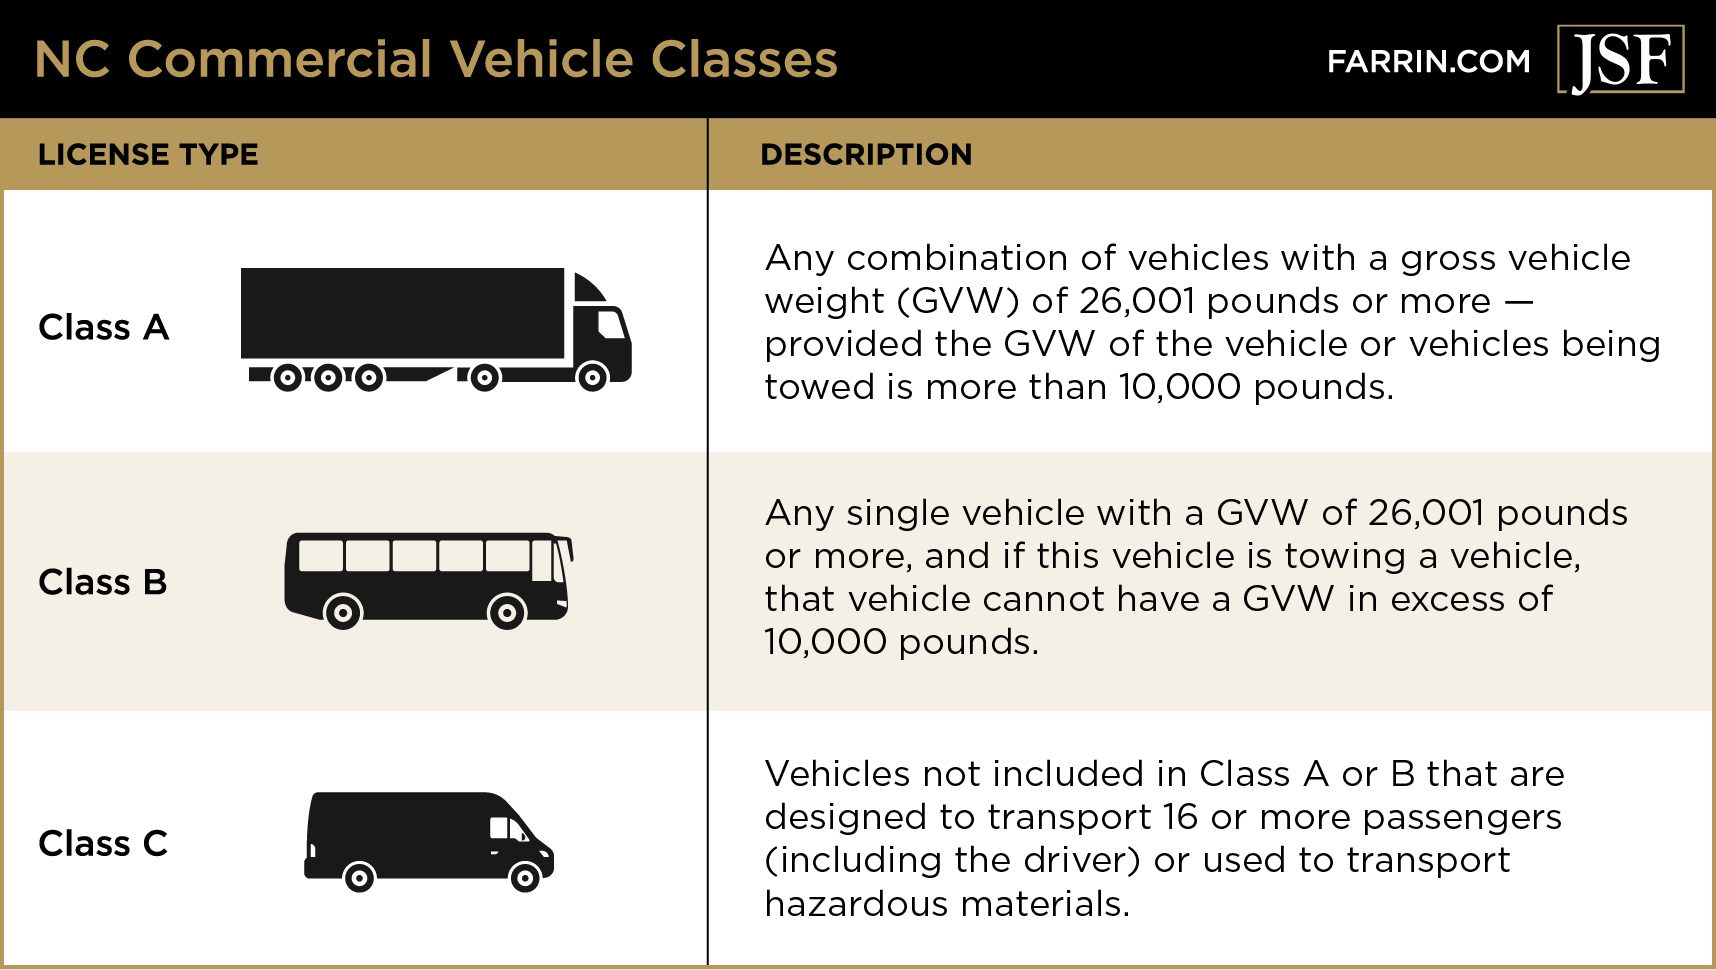 Licenses for commercial vehicles in North Carolina are divided into three classes.